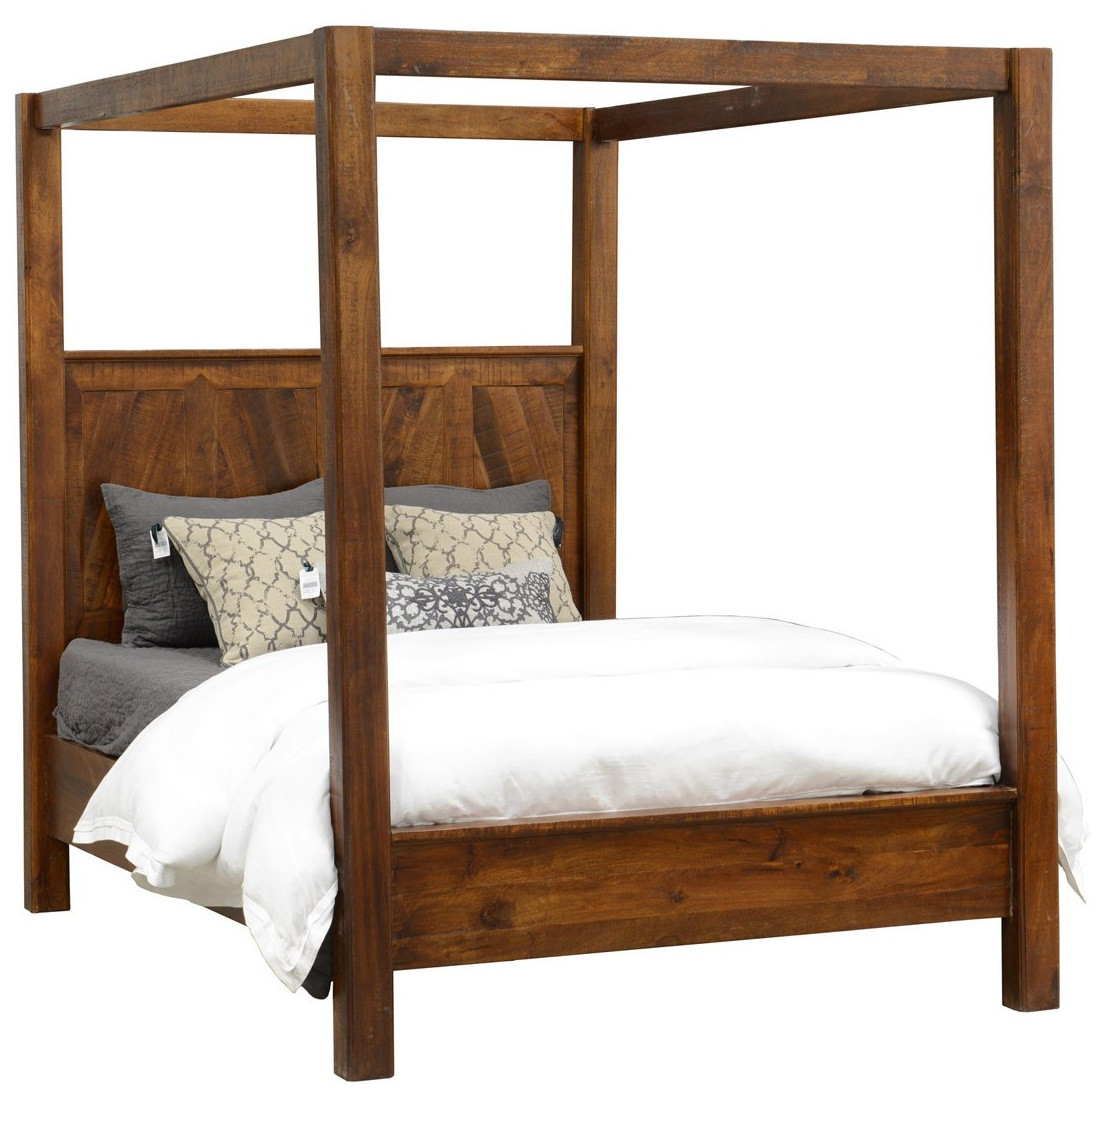 kosas queen wood canopy bed - Wooden Canopy Bed Frame